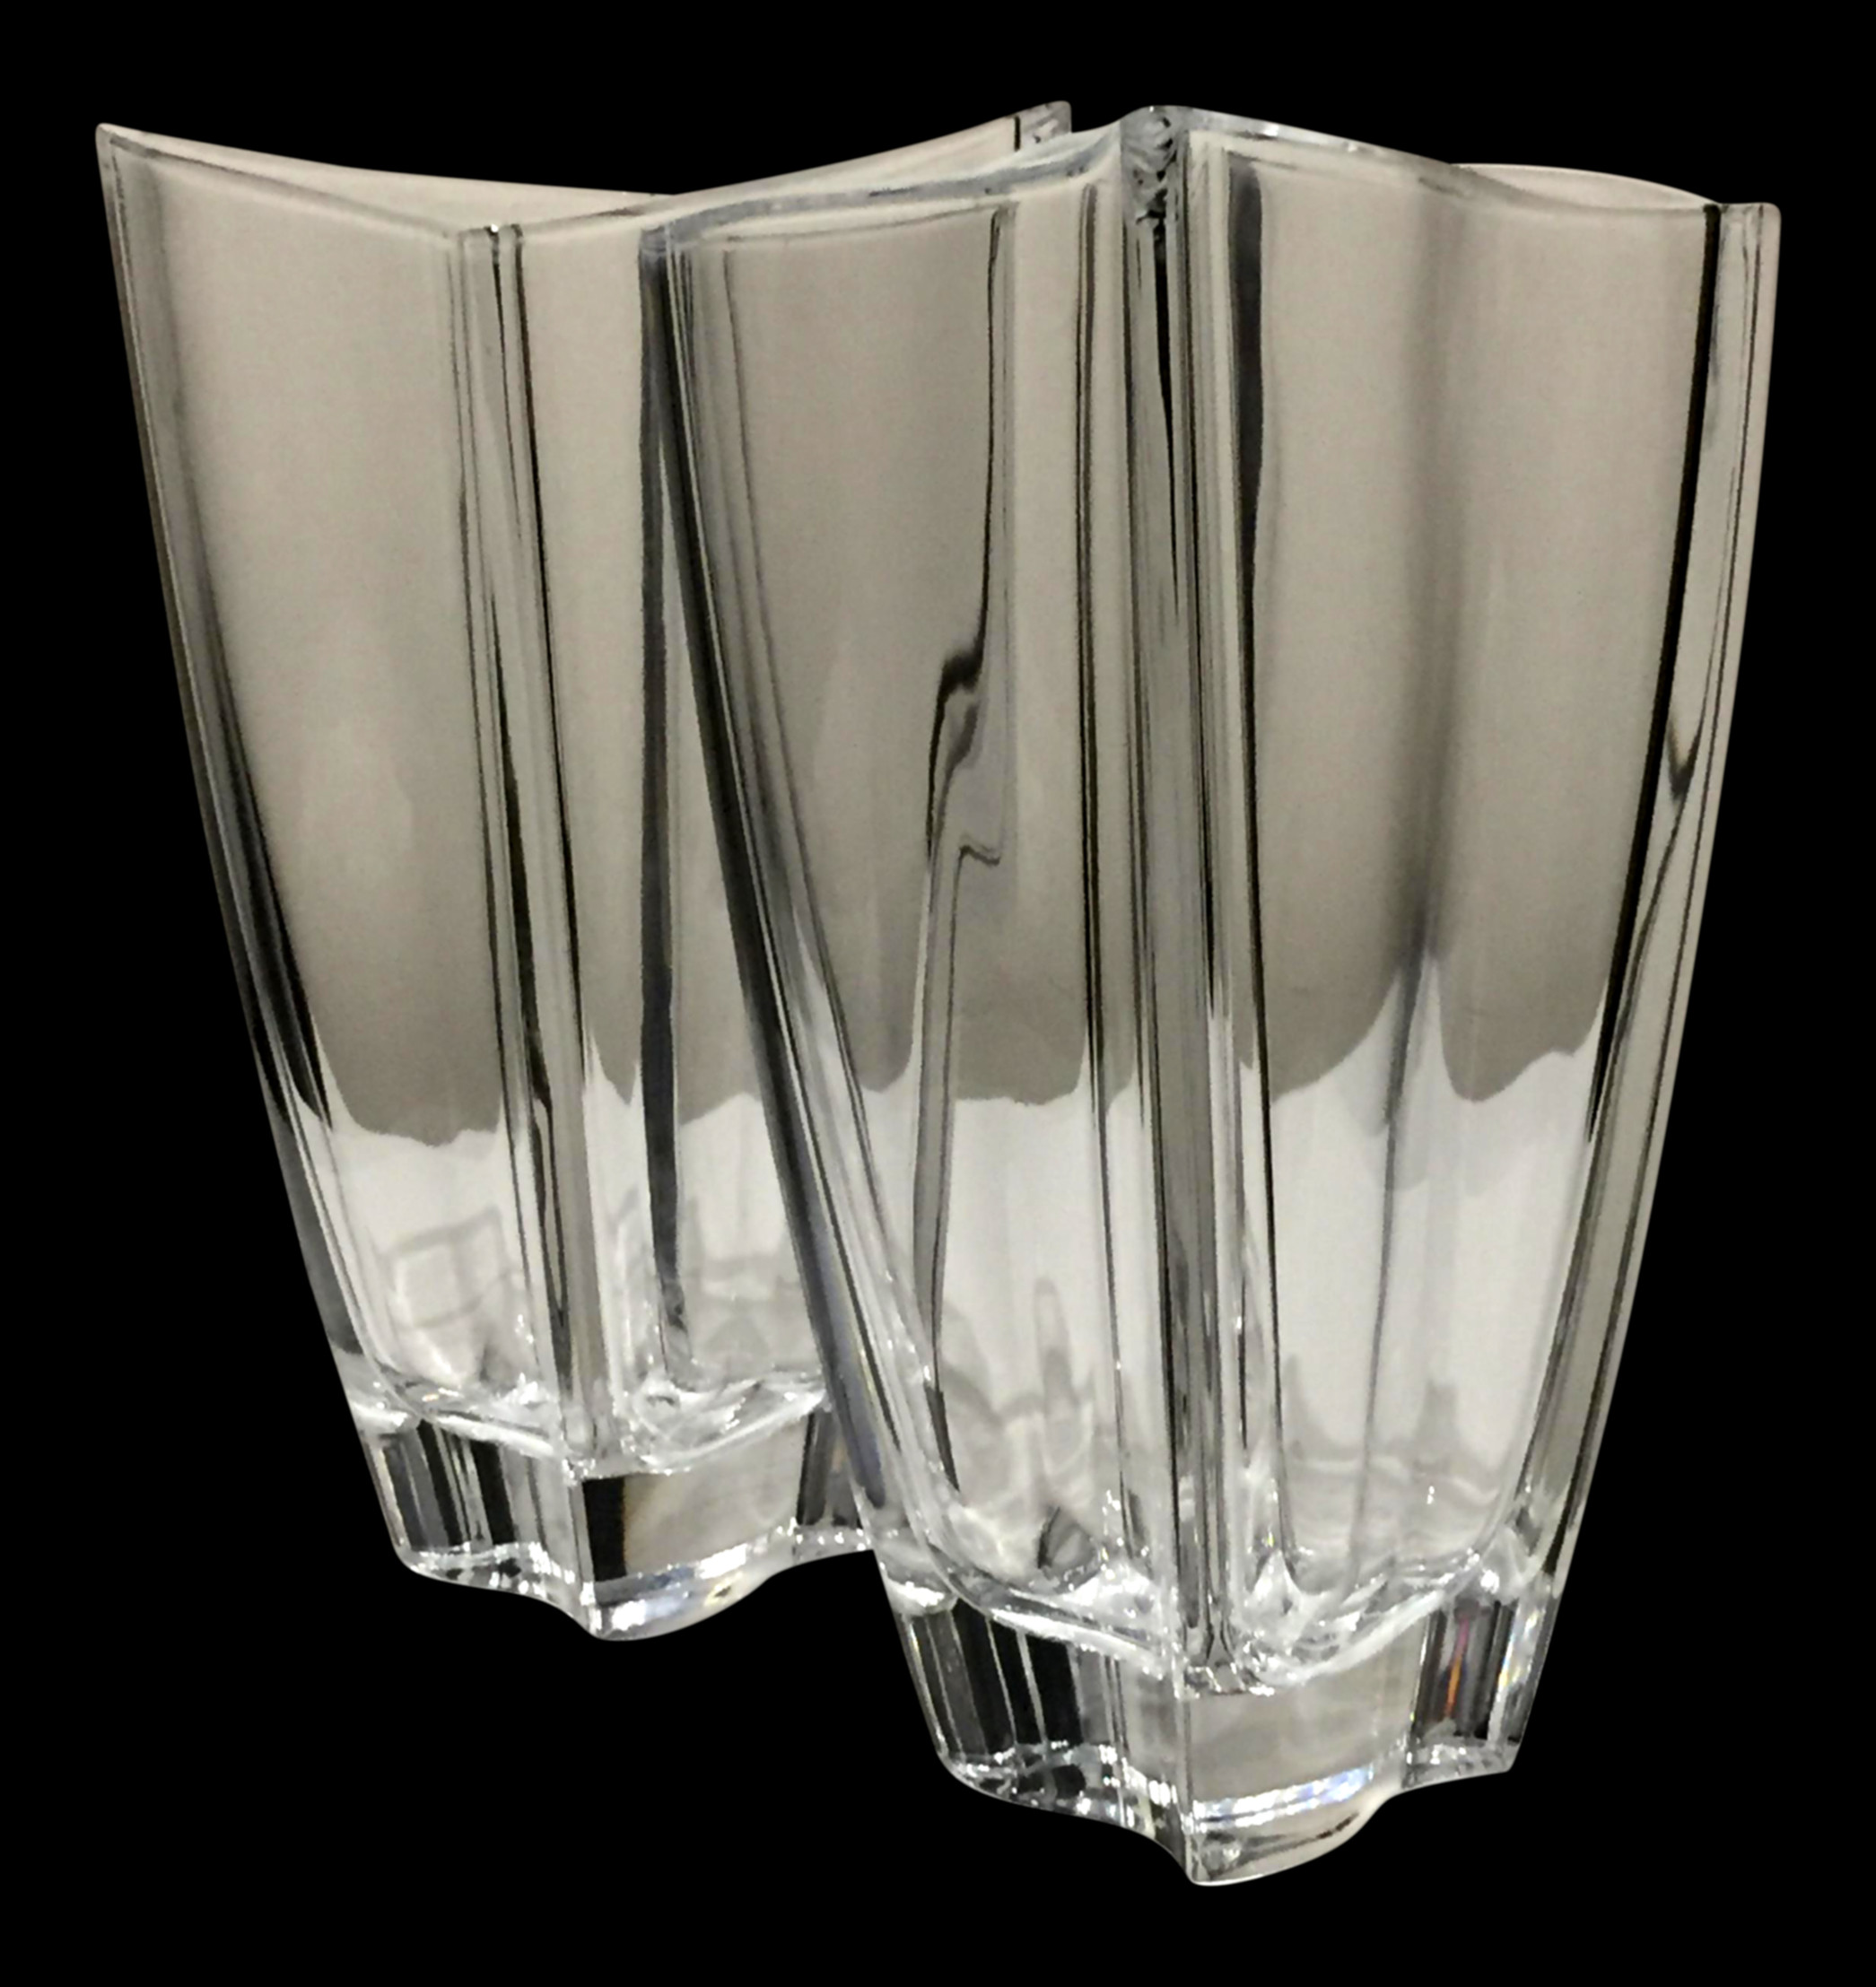 Large Square Clear Glass Vases Of Square Vases 6″ Set Of 12 Abc Glassware Square Glass Vases In Square Vases 6″ Set Of 12 Abc Glassware Square Glass Vases Pictures